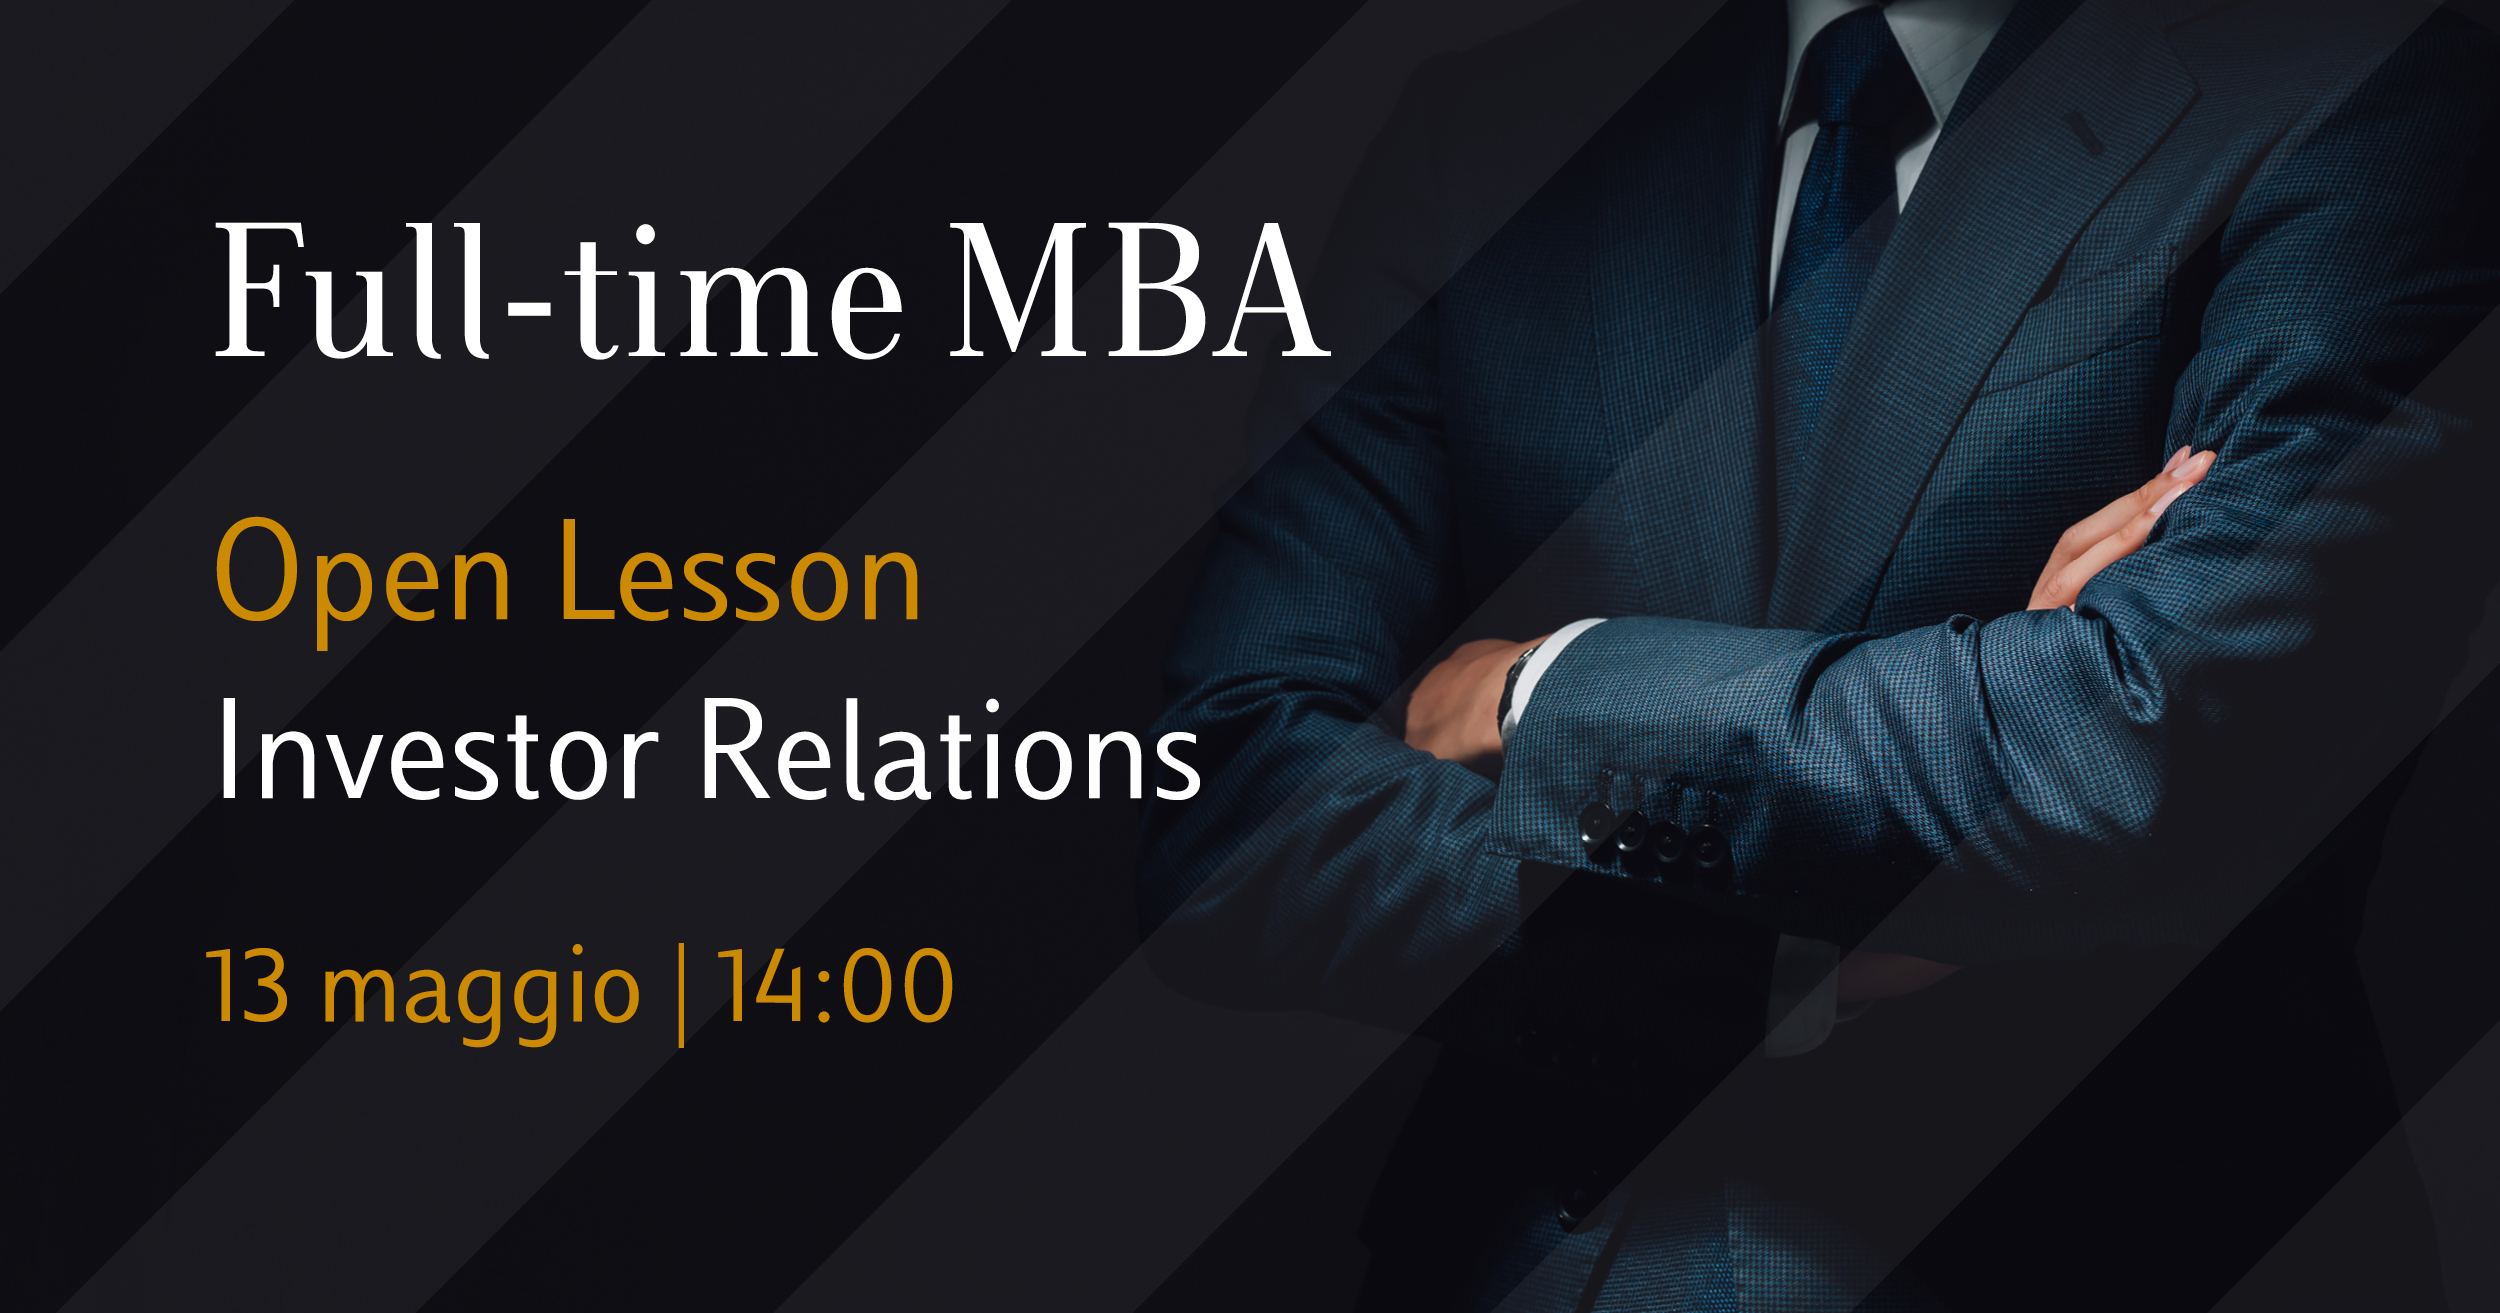 20200427_Full-time_MBA_Open_Lesson_1200x630